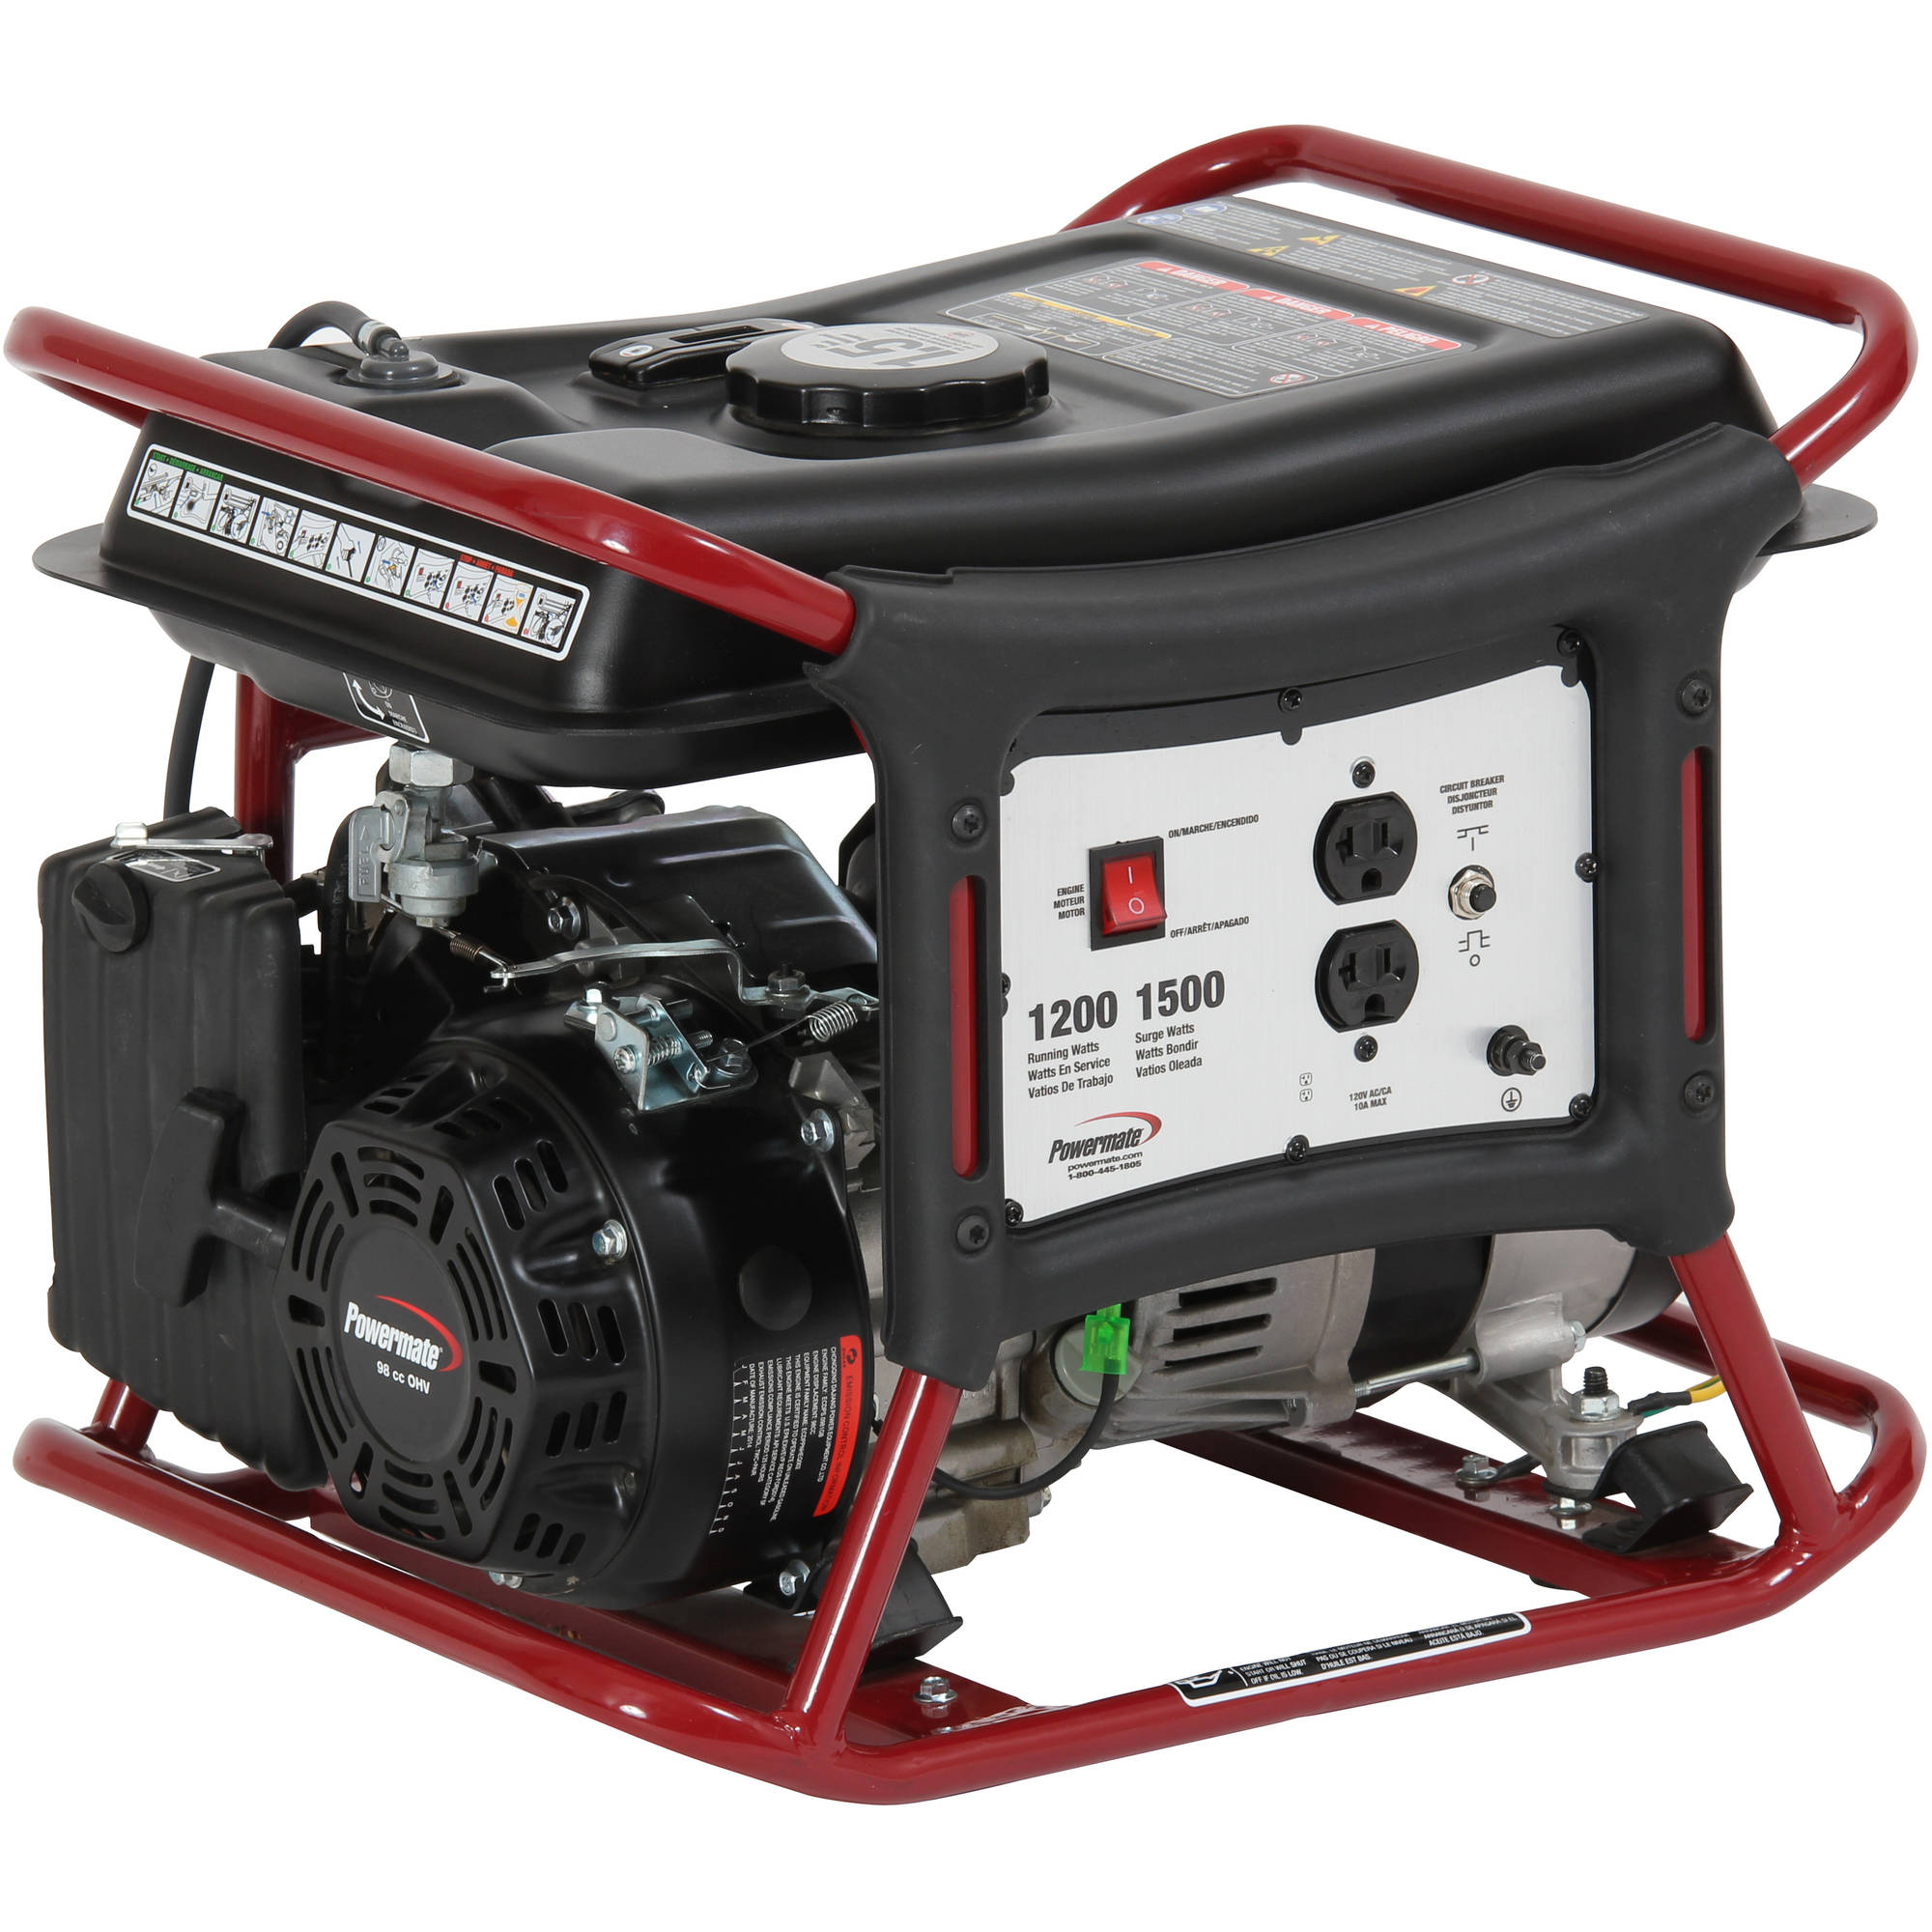 Sportsman 1000 Watt Inverter Generator Carb Approved Circuit Breaker Cold Hot Weather And High Altitude Operation